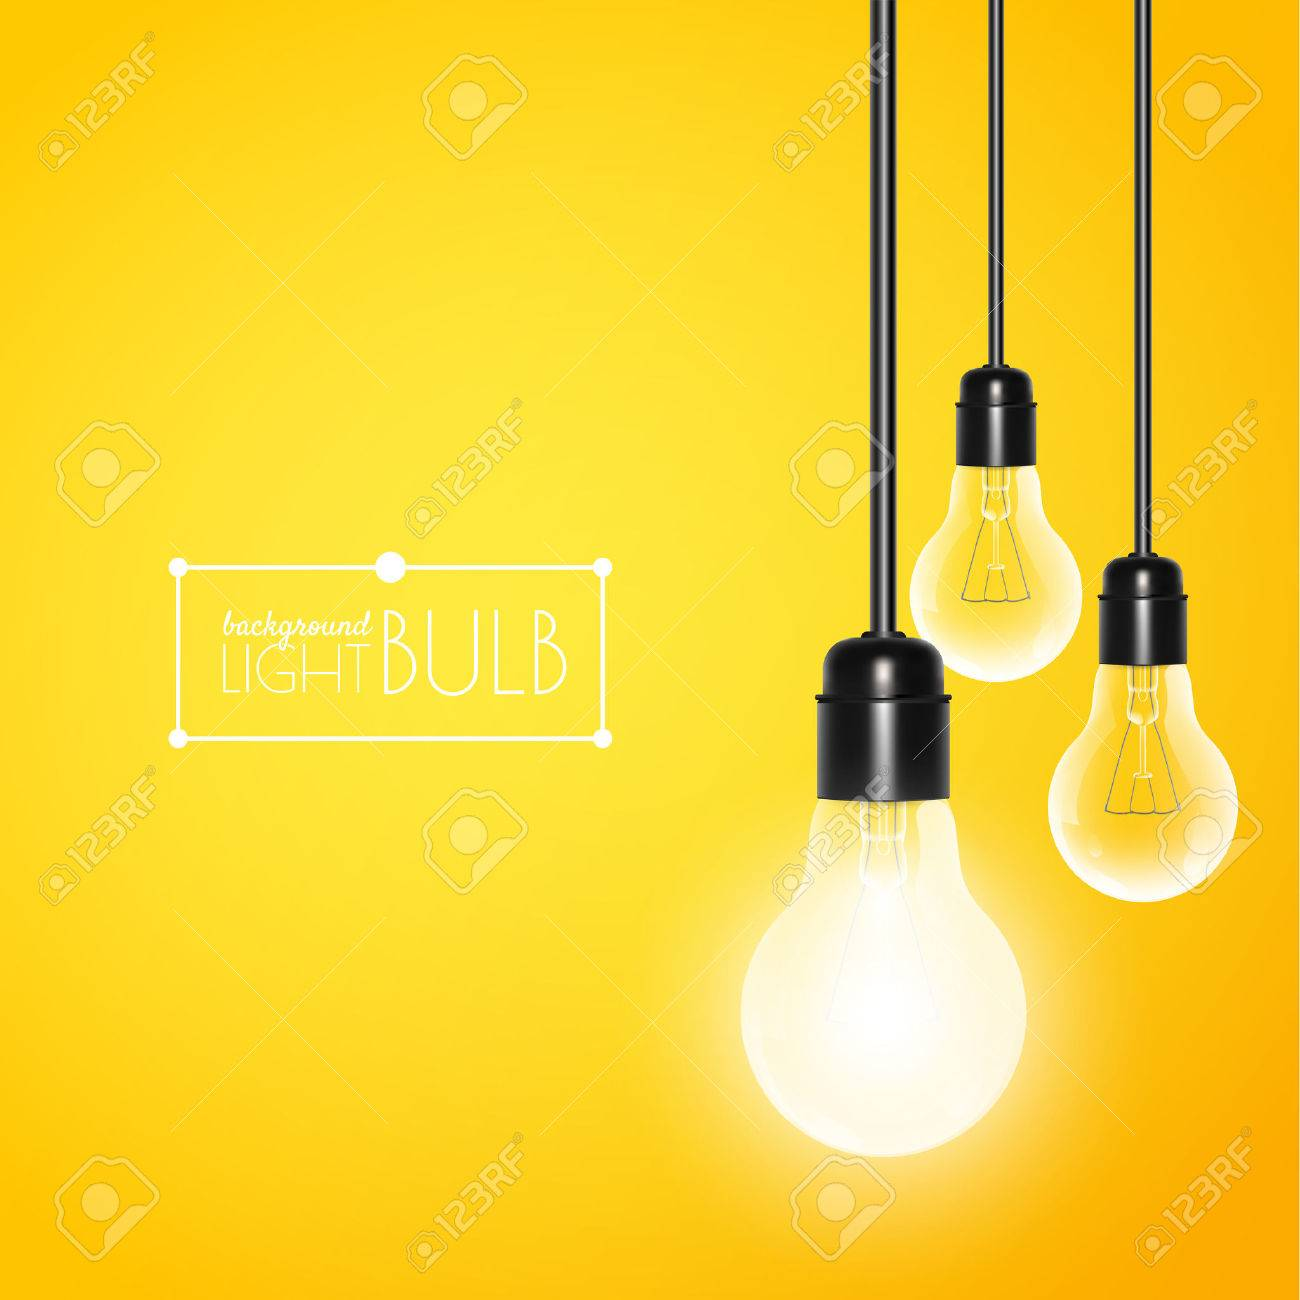 Hanging light bulbs with glowing one on a yellow background. Vector illustration for your design. - 51376609